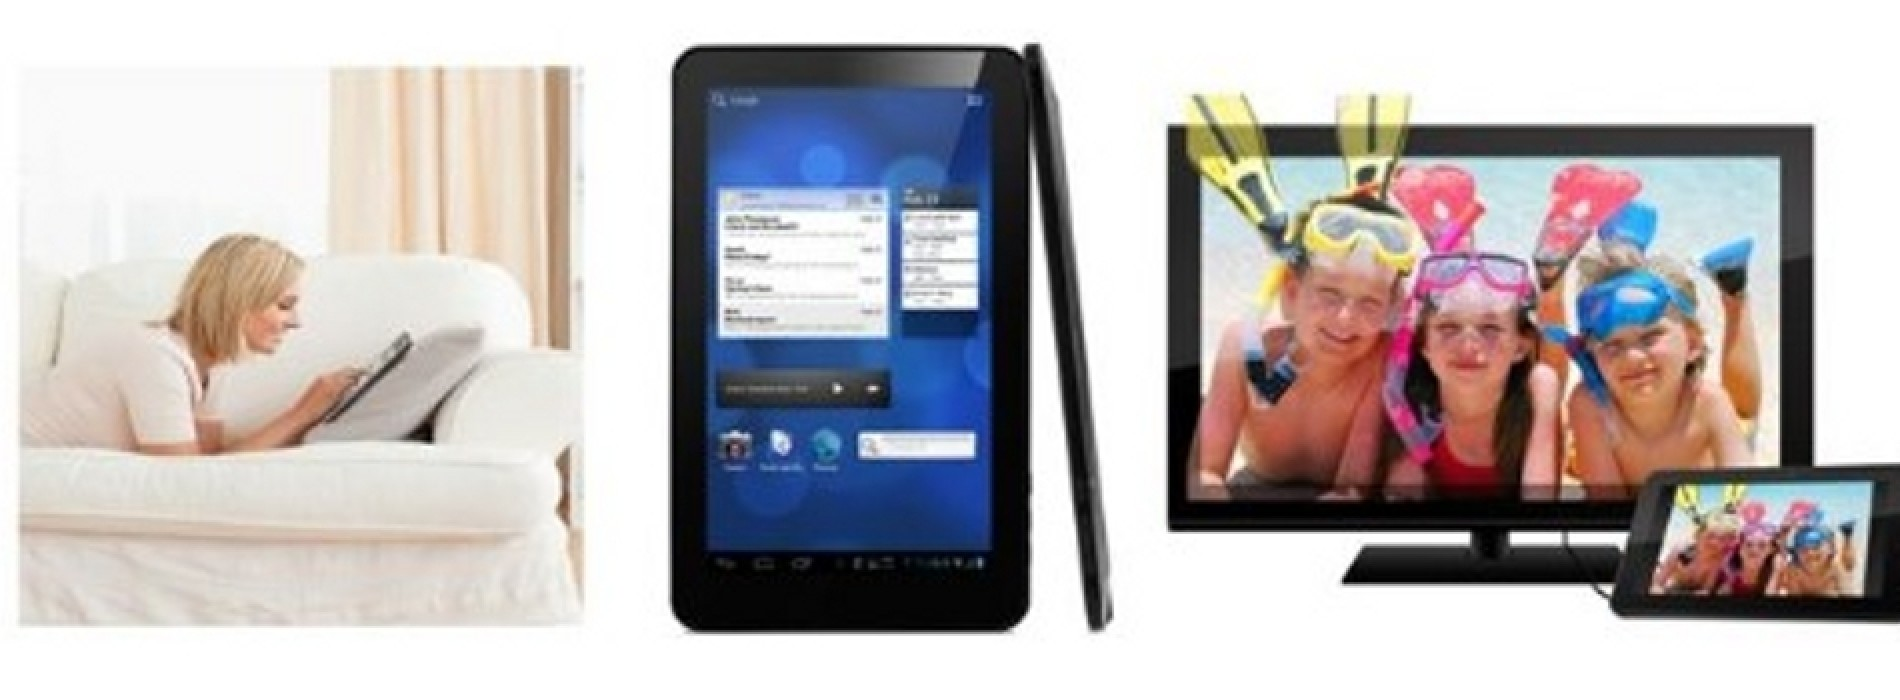 The Ematic eGlide XL Pro 2, an inexpensive Android v4.0 powered tablet now available